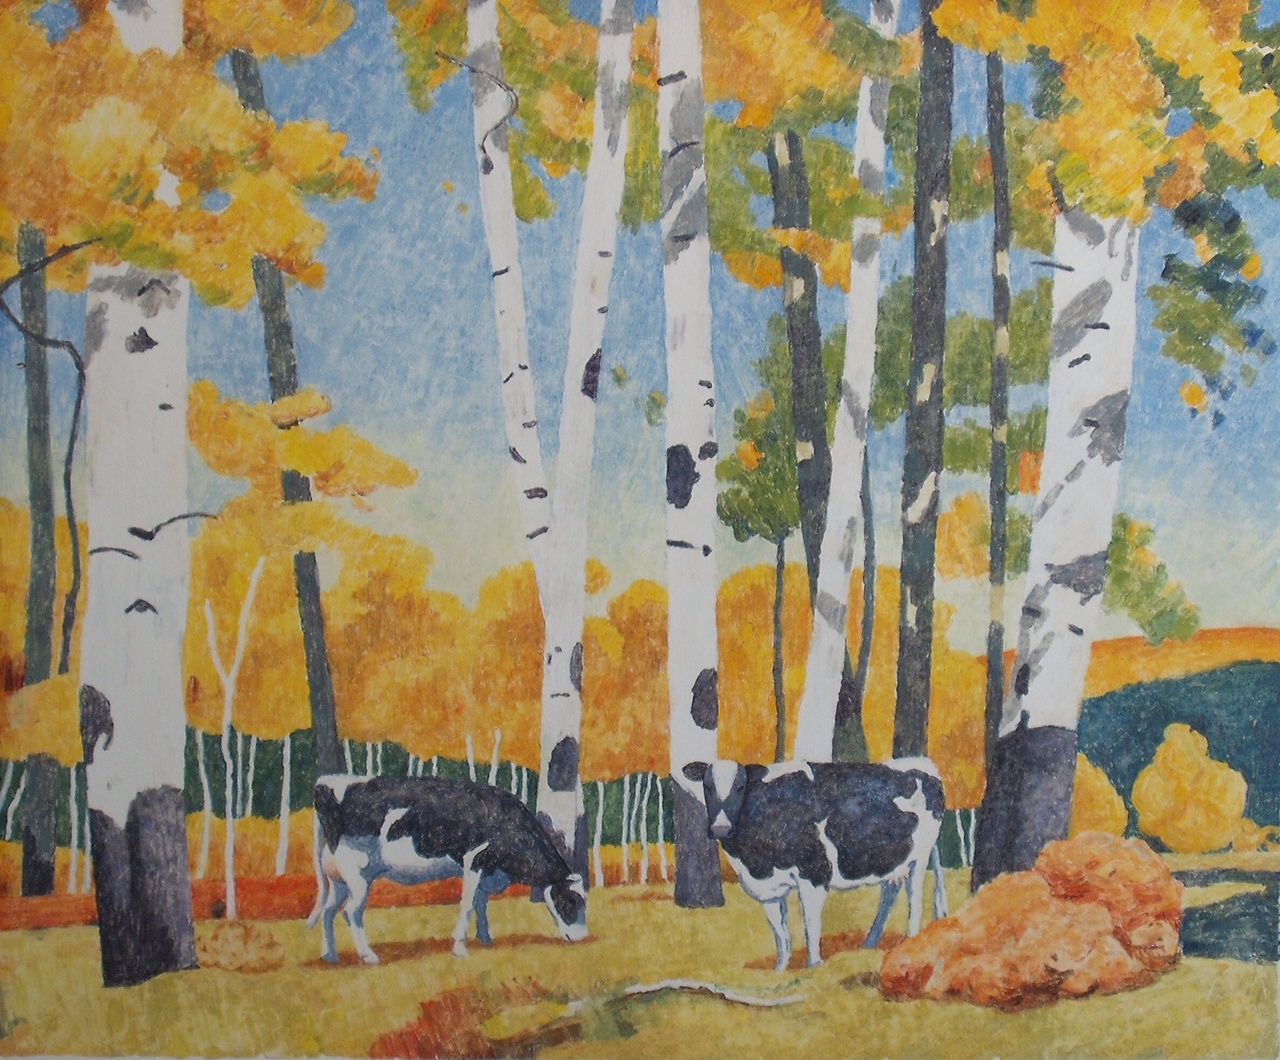 Cows in the Grove